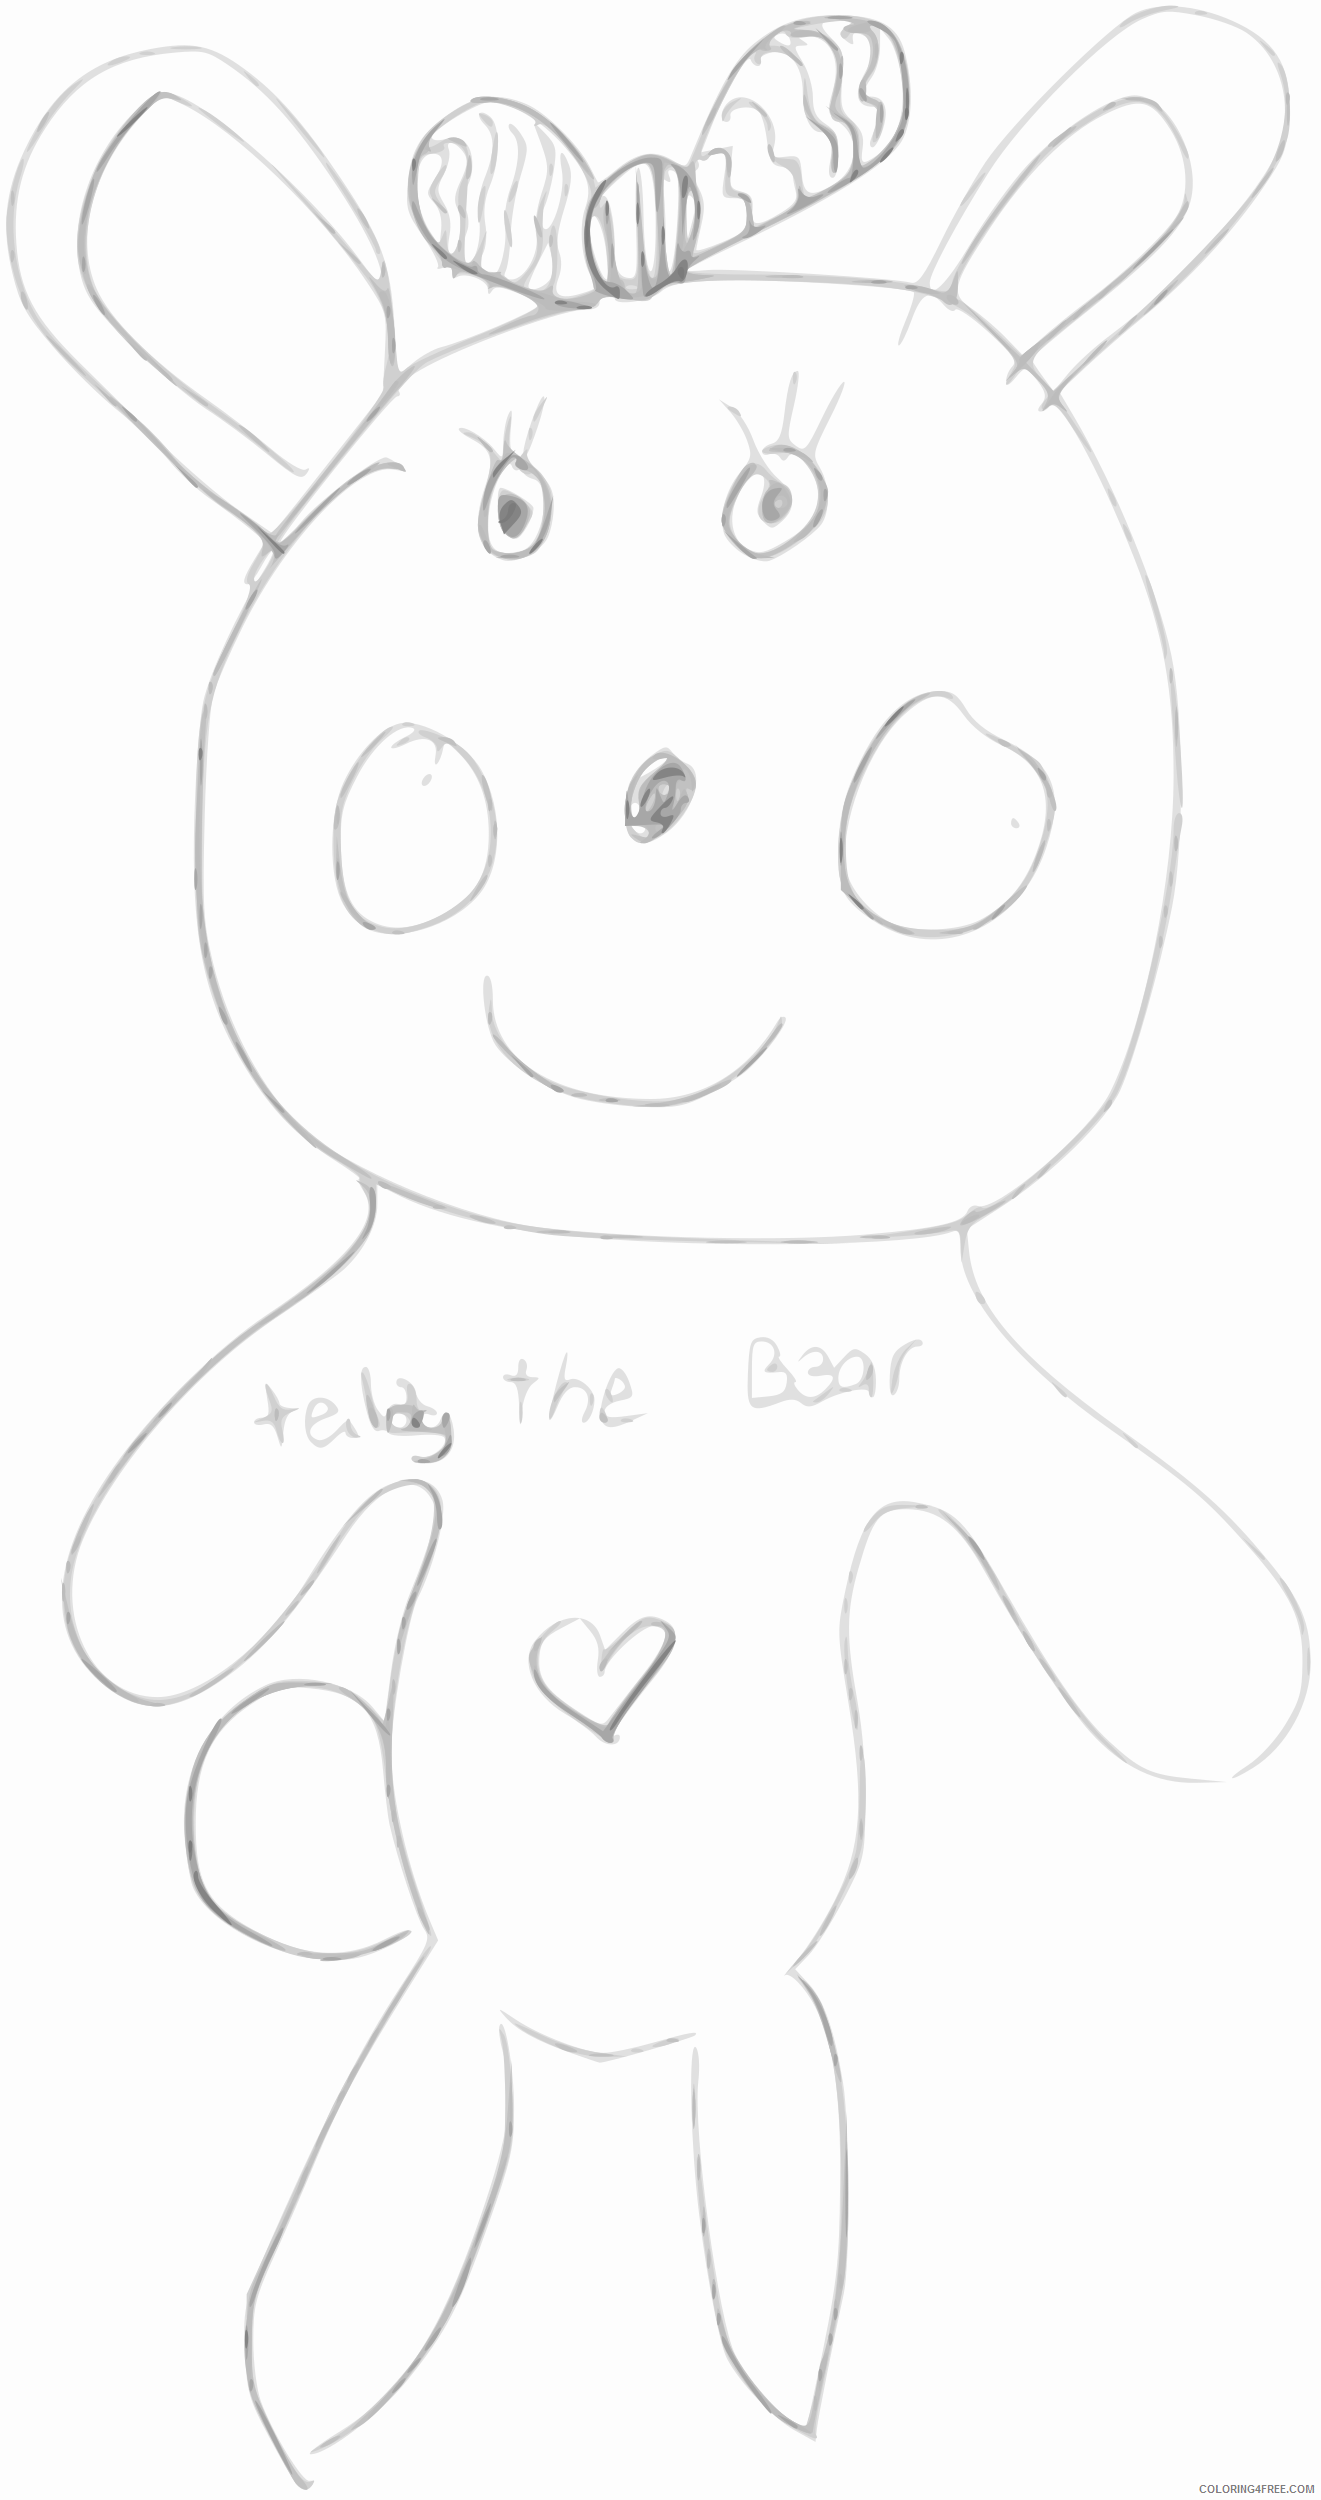 Teddy Bear Coloring Pages teddy the bear 25 Printable Coloring4free